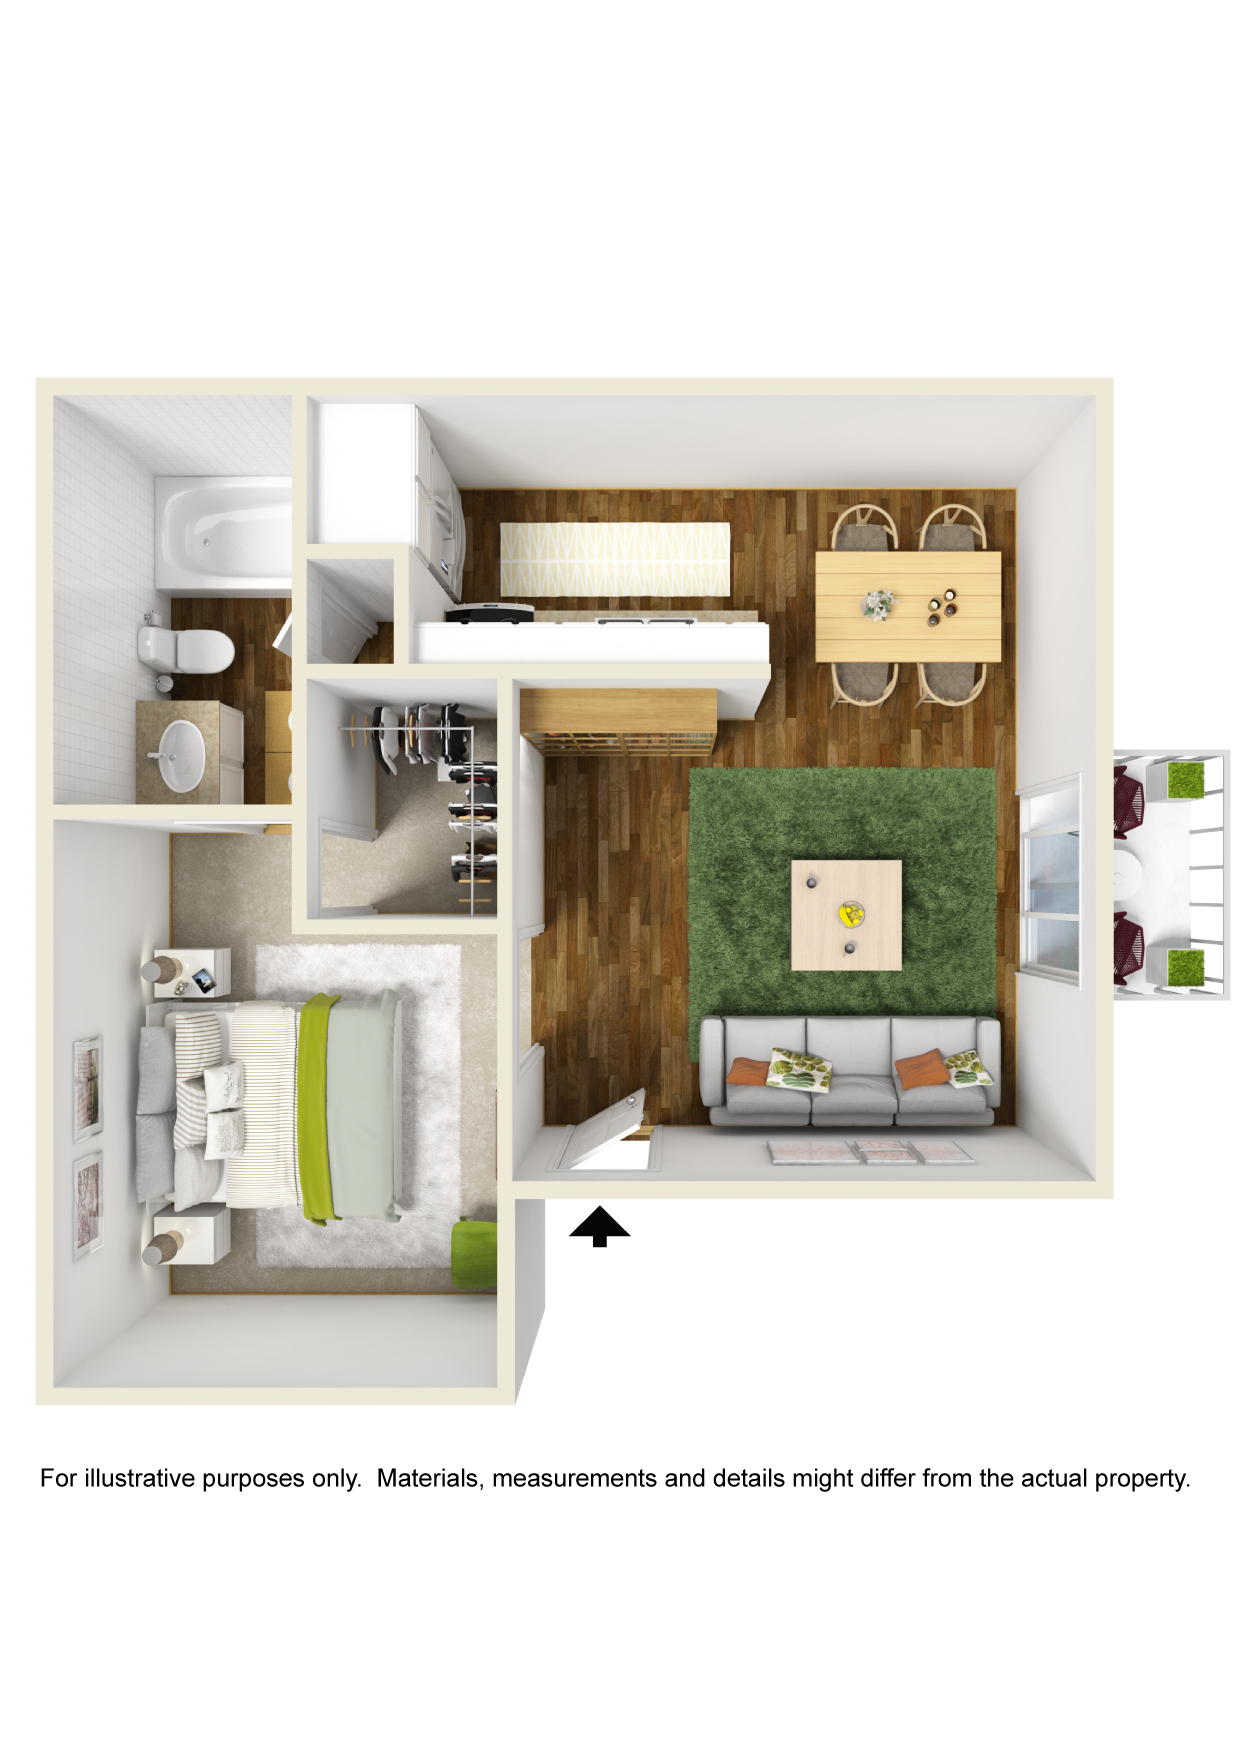 Informative Picture of 1 Bedroom- A